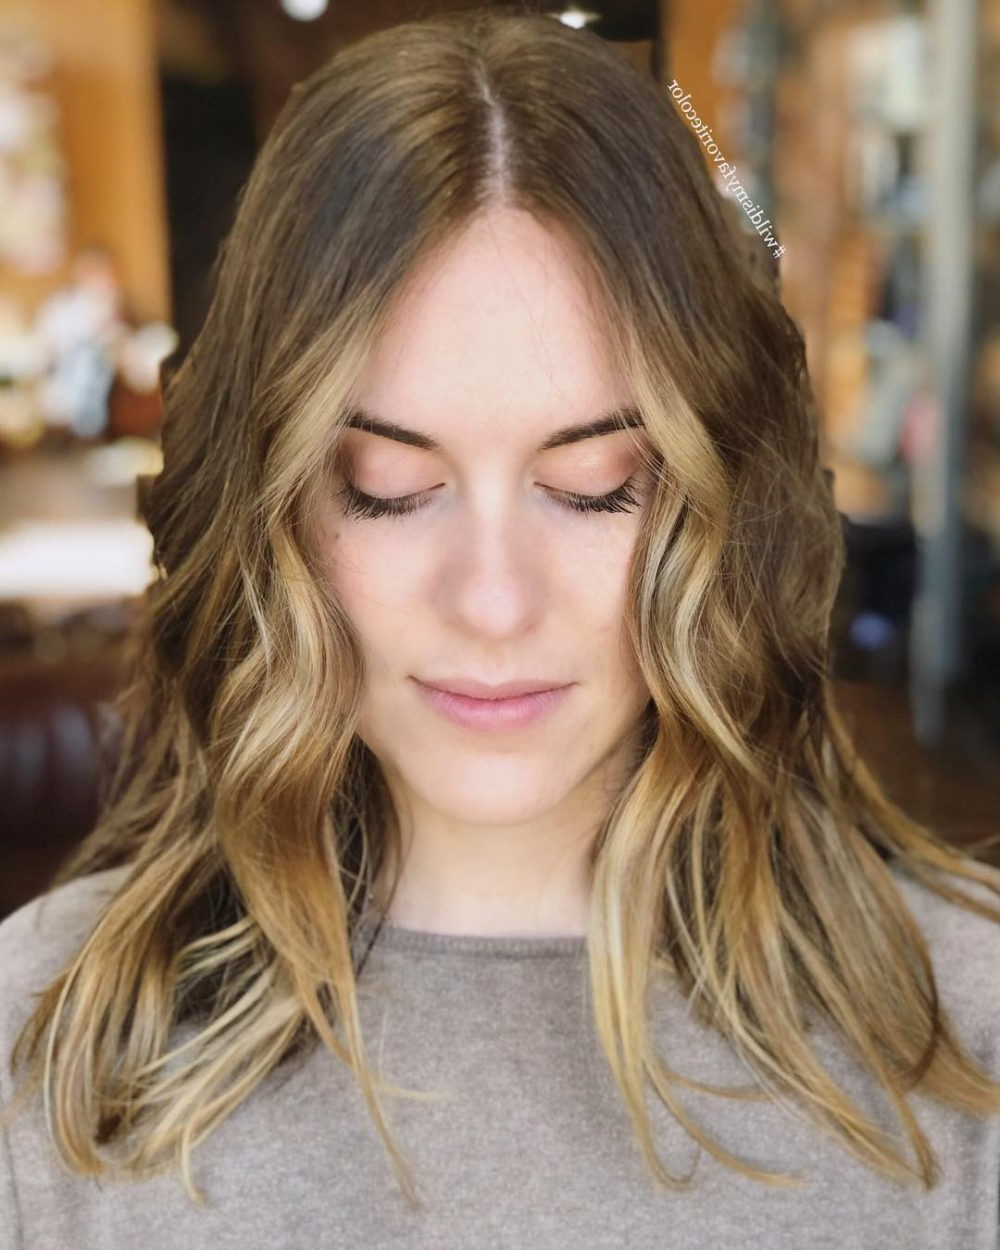 17 Flattering Medium Hairstyles For Round Faces In 2019 For Fashionable Edgy Medium Hairstyles For Round Faces (View 4 of 20)